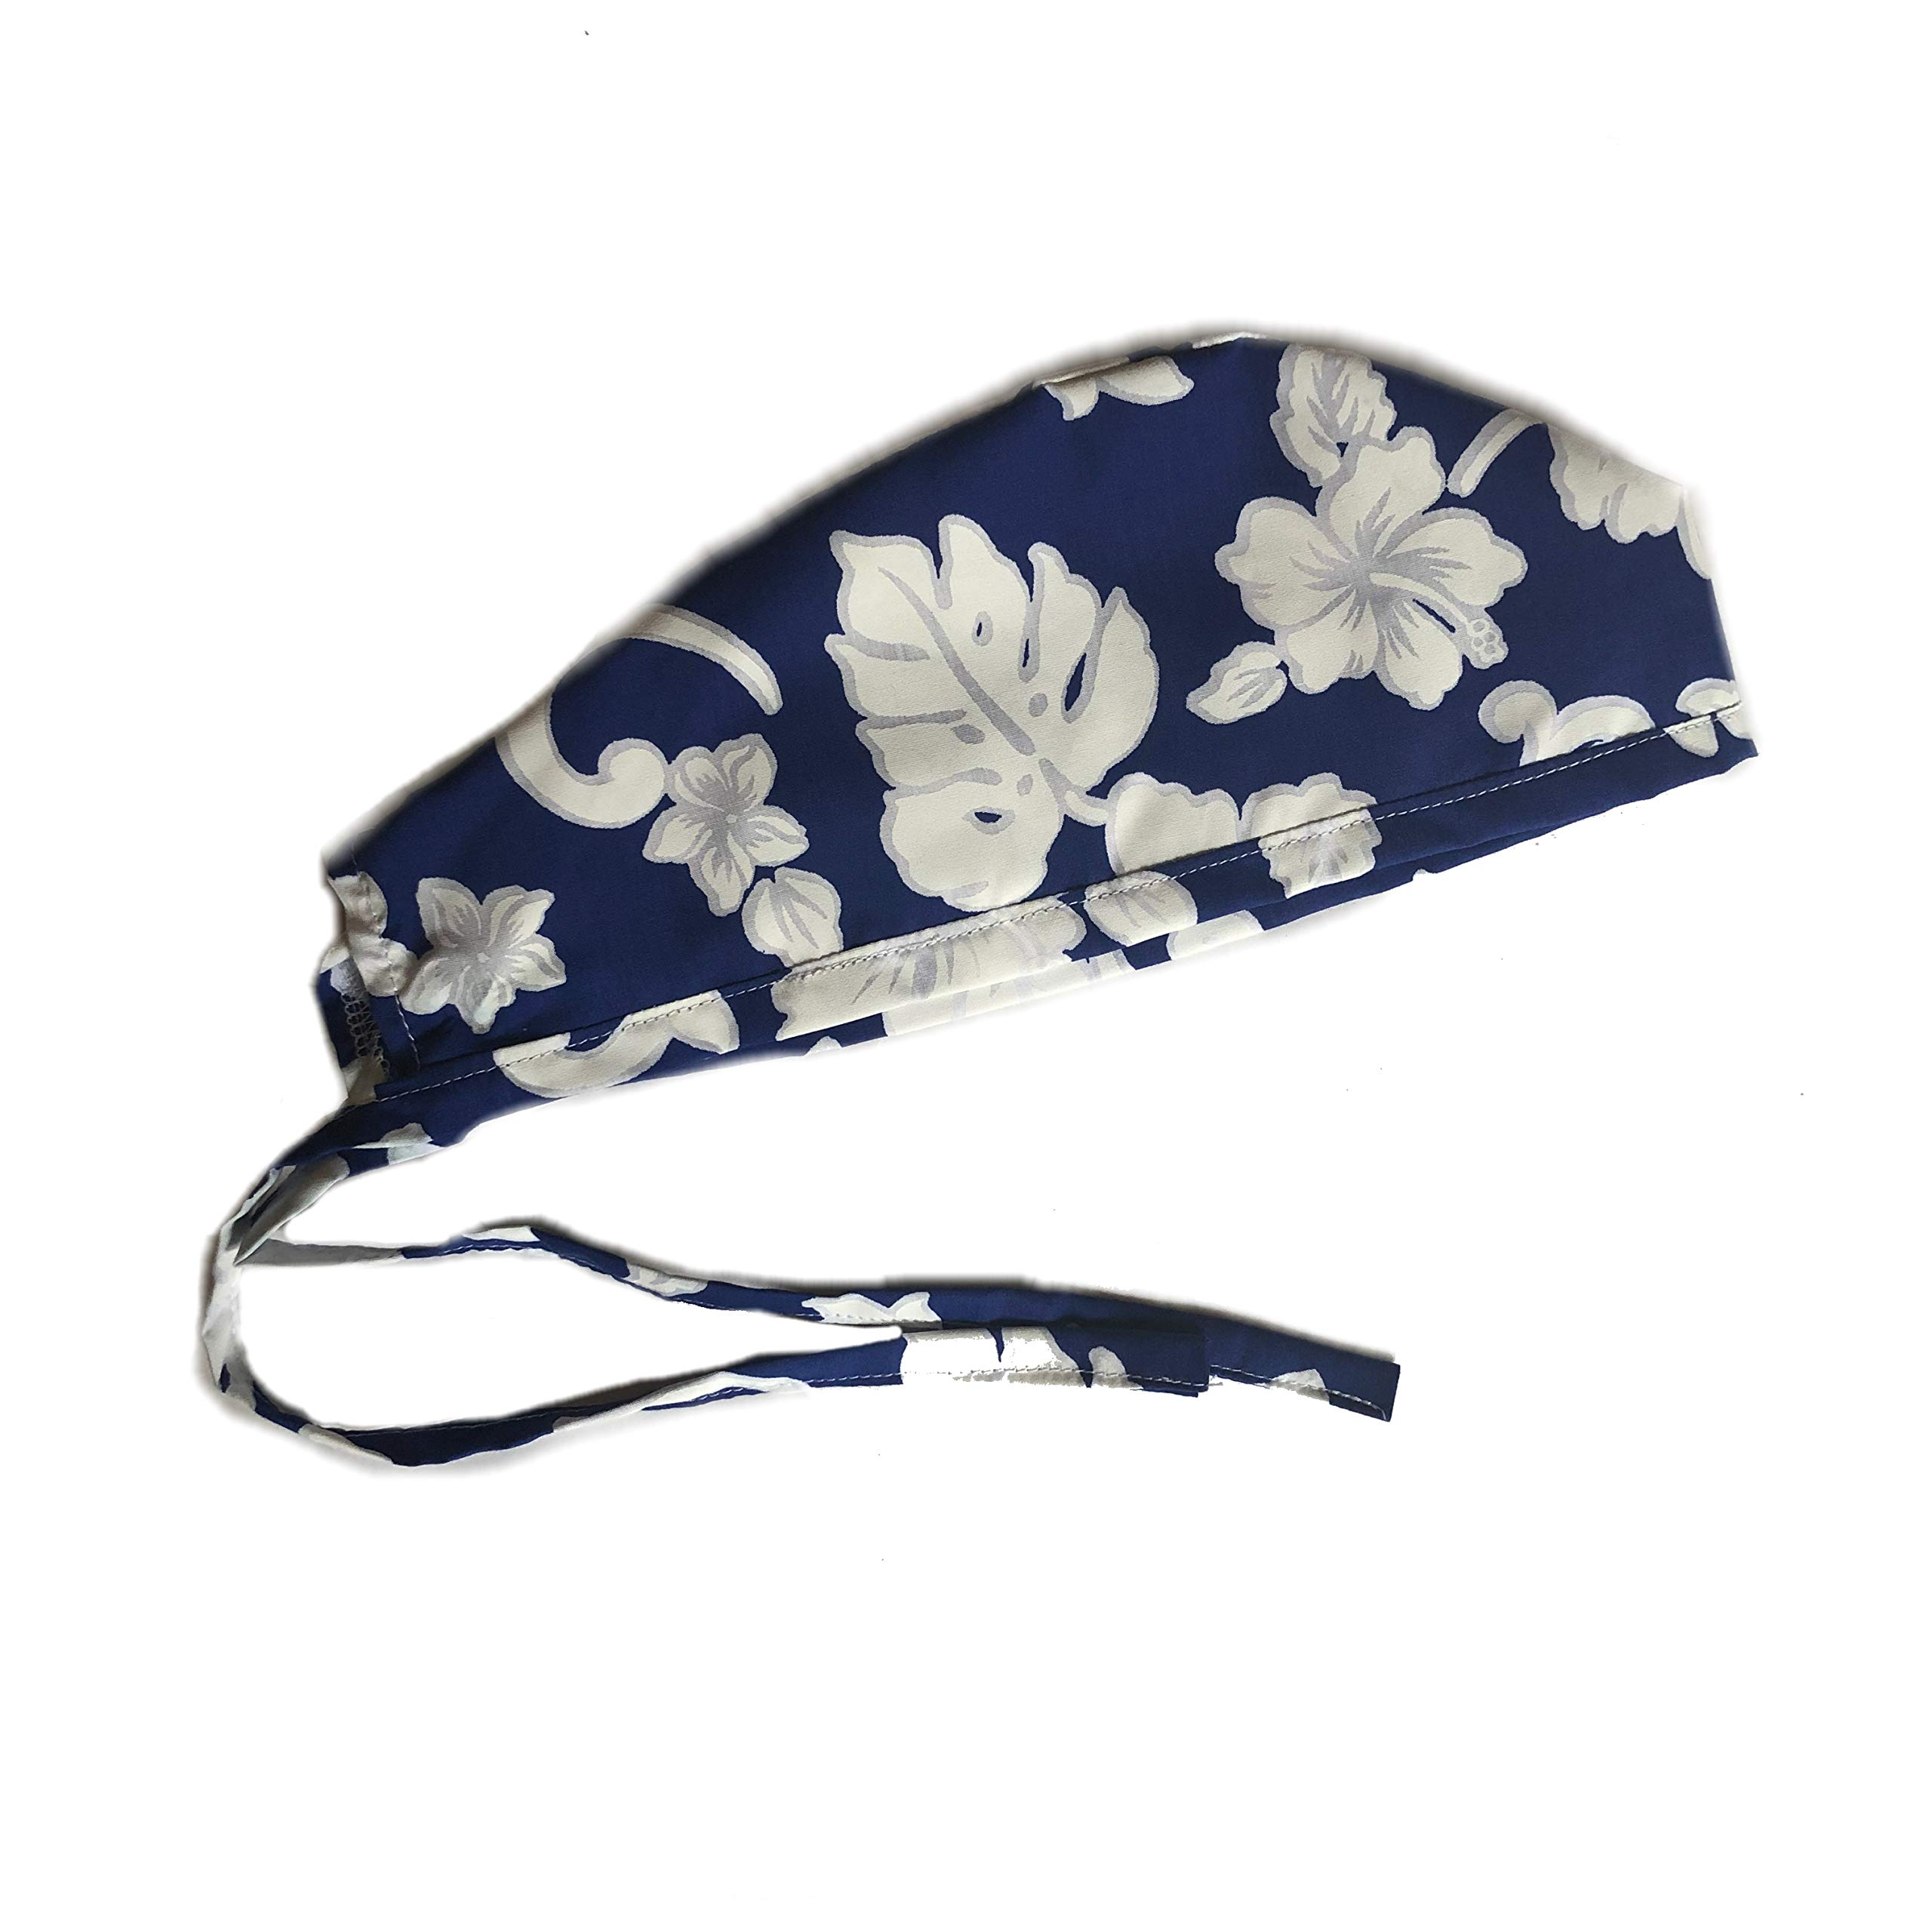 Unisex Mens Tie Back Scrub Cap Surgical Cap Navy White Flowers by Grace N May